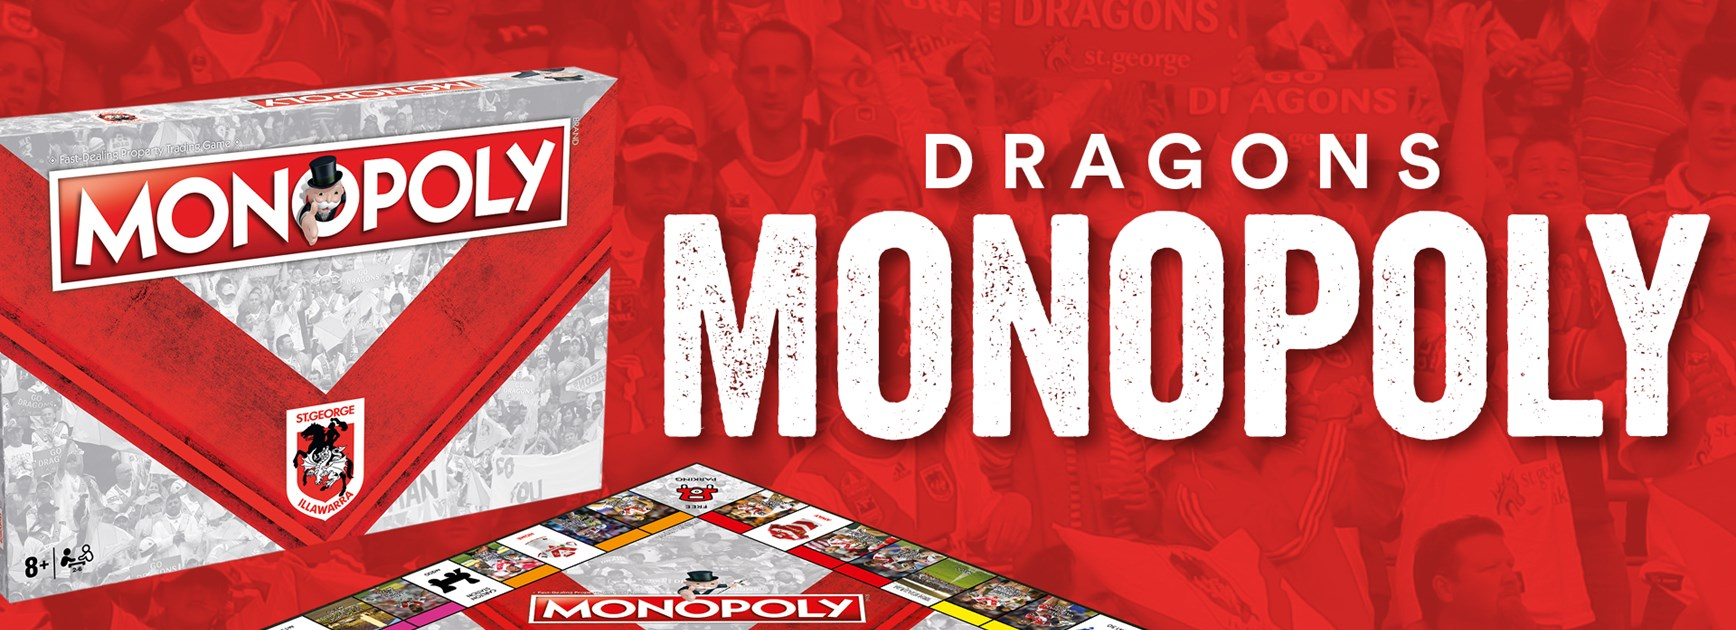 Dragons Monopoly on sale now